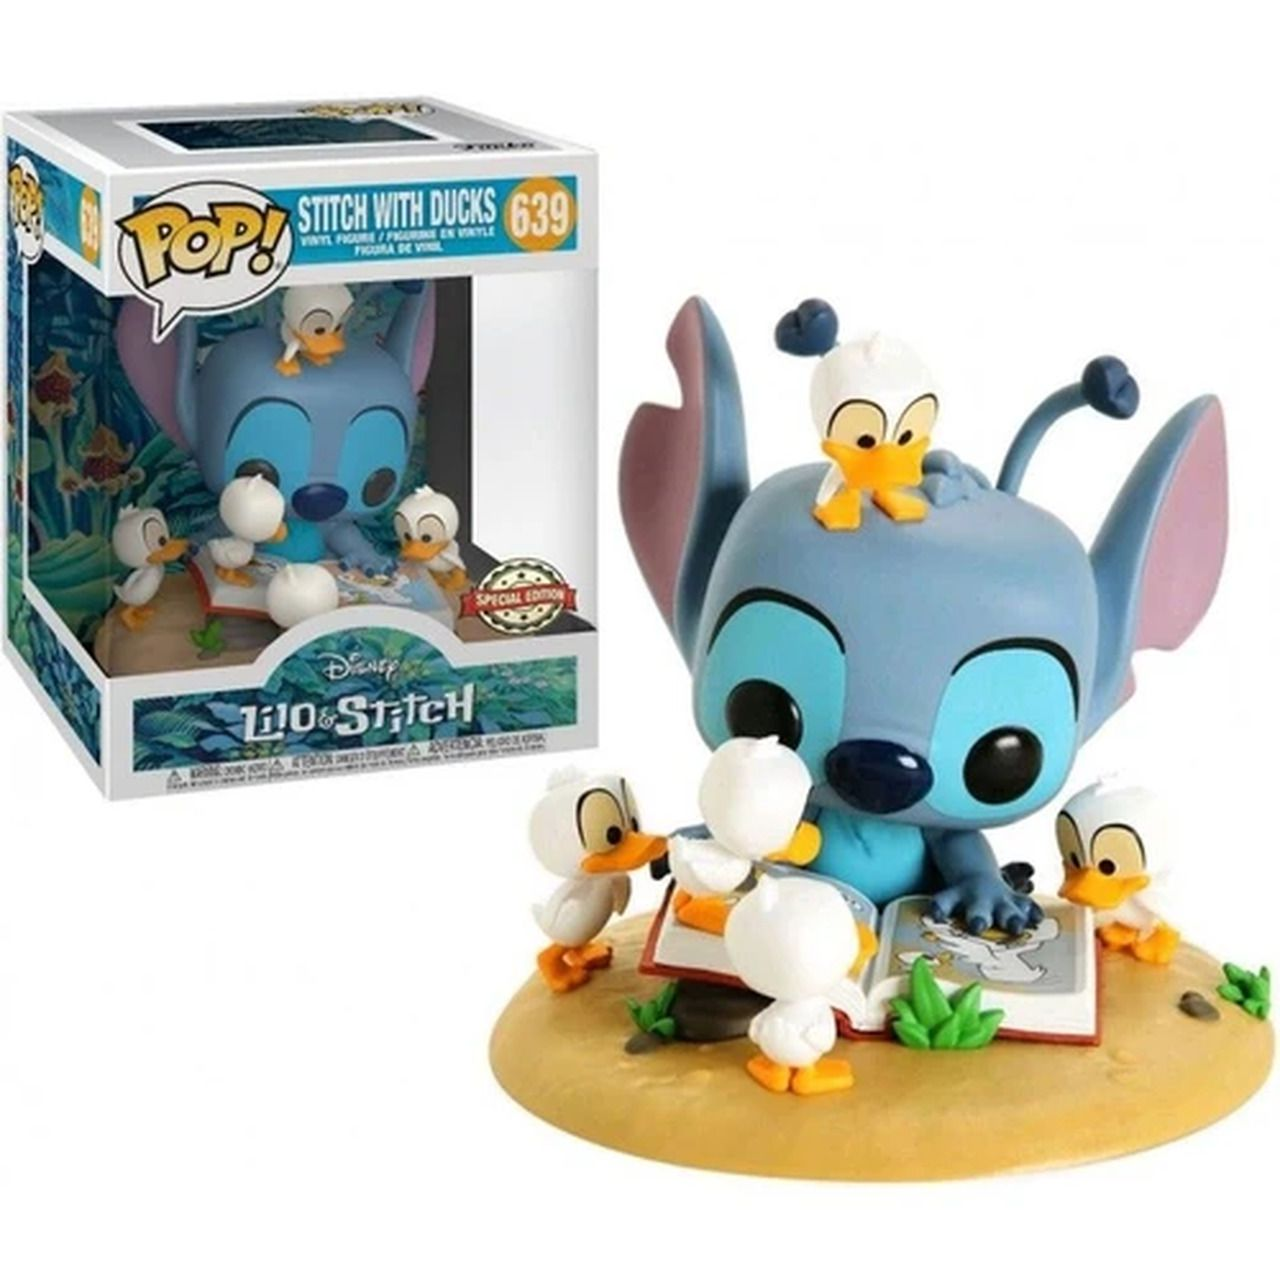 Pop! Stitch com os Patinhos (With Ducks): Lilo & Stitch (Exclusivo) #639 - Funko